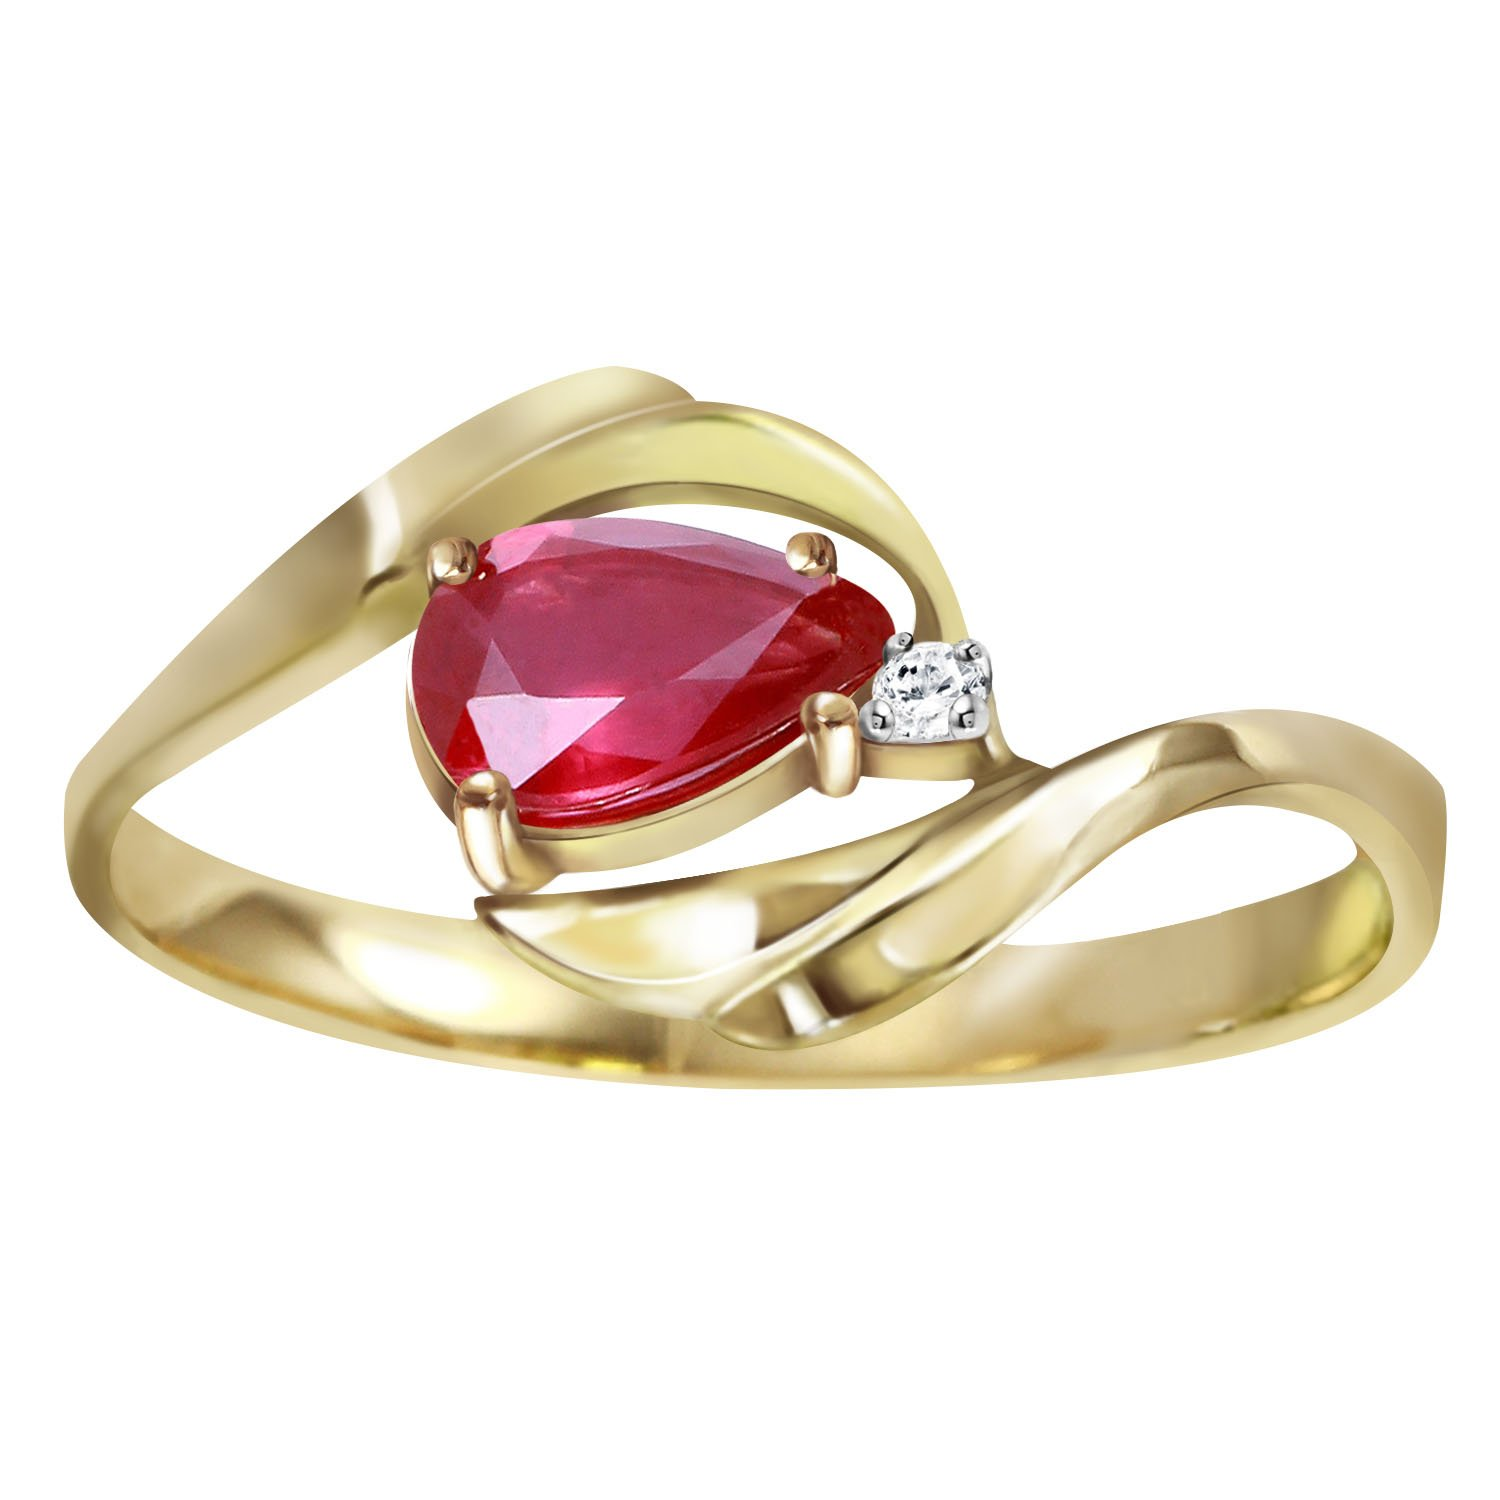 Galaxy Gold 0.51 Carat 14K Yellow Solid Gold Ring with Pear Shape Natural Ruby and Round Diamond (Yellow-Gold, 6) by Galaxy Gold